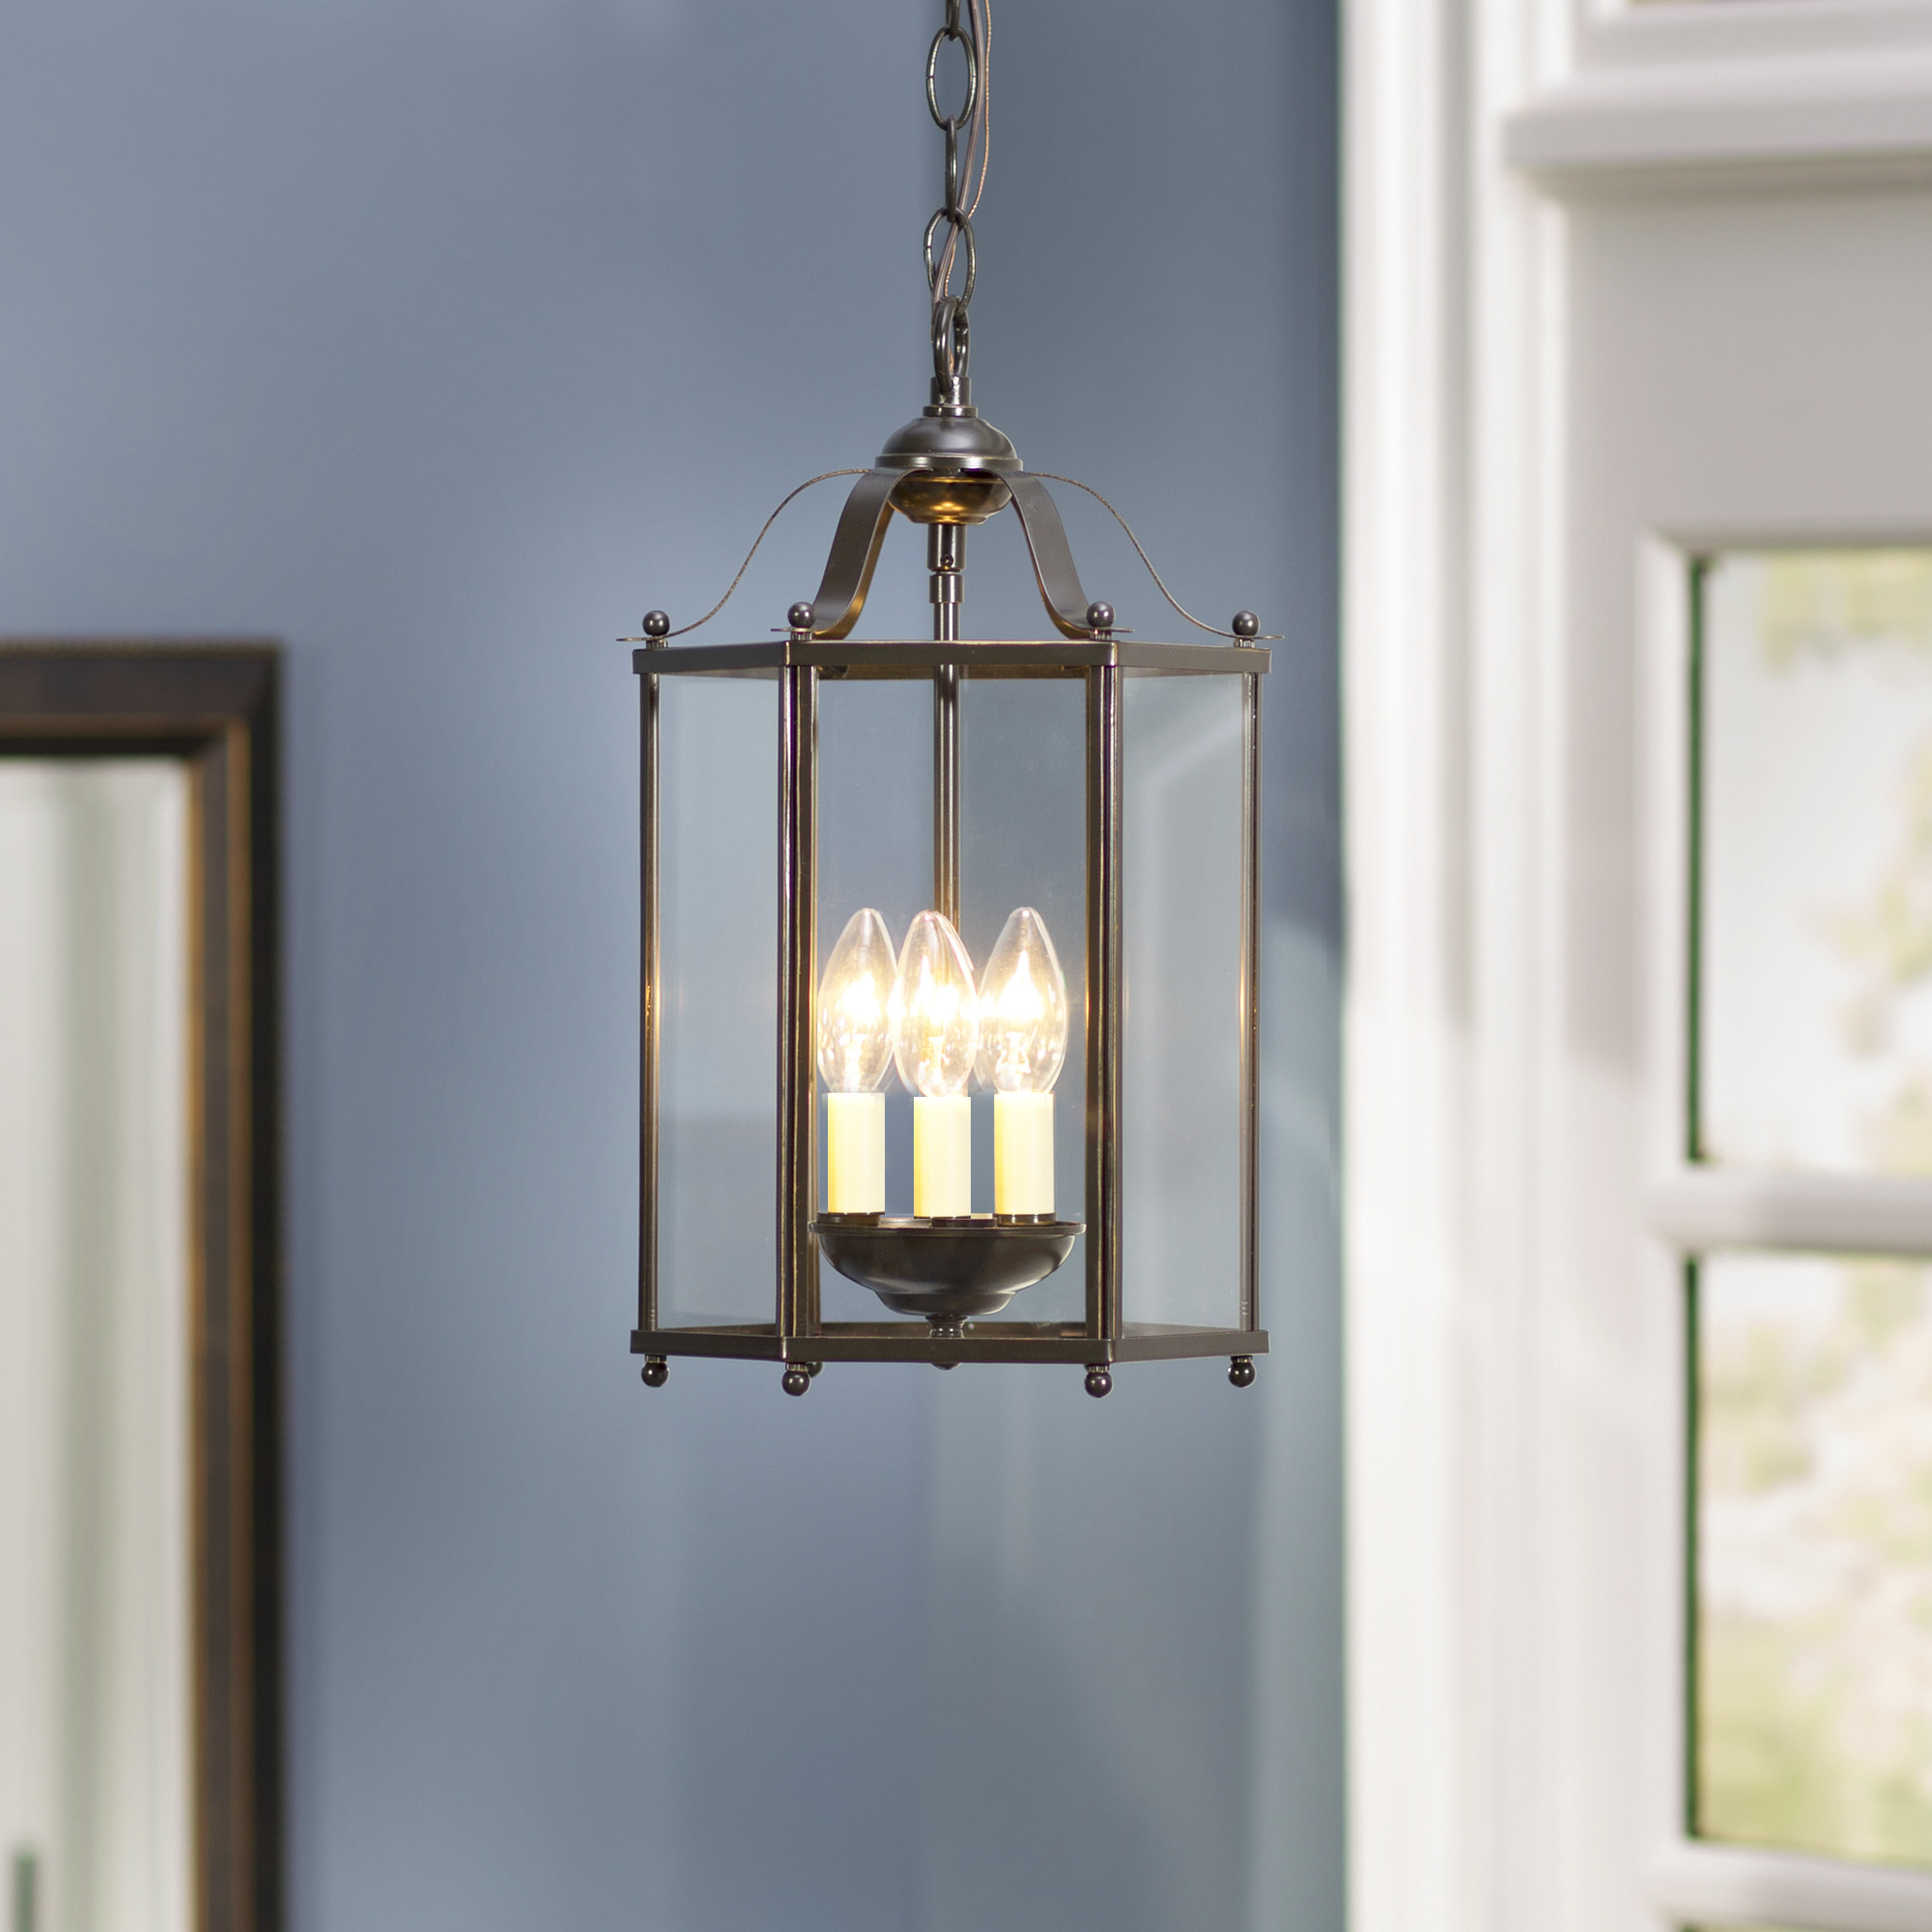 2019 Leiters 3-Light Lantern Geometric Pendant within Chauvin 3-Light Lantern Geometric Pendants